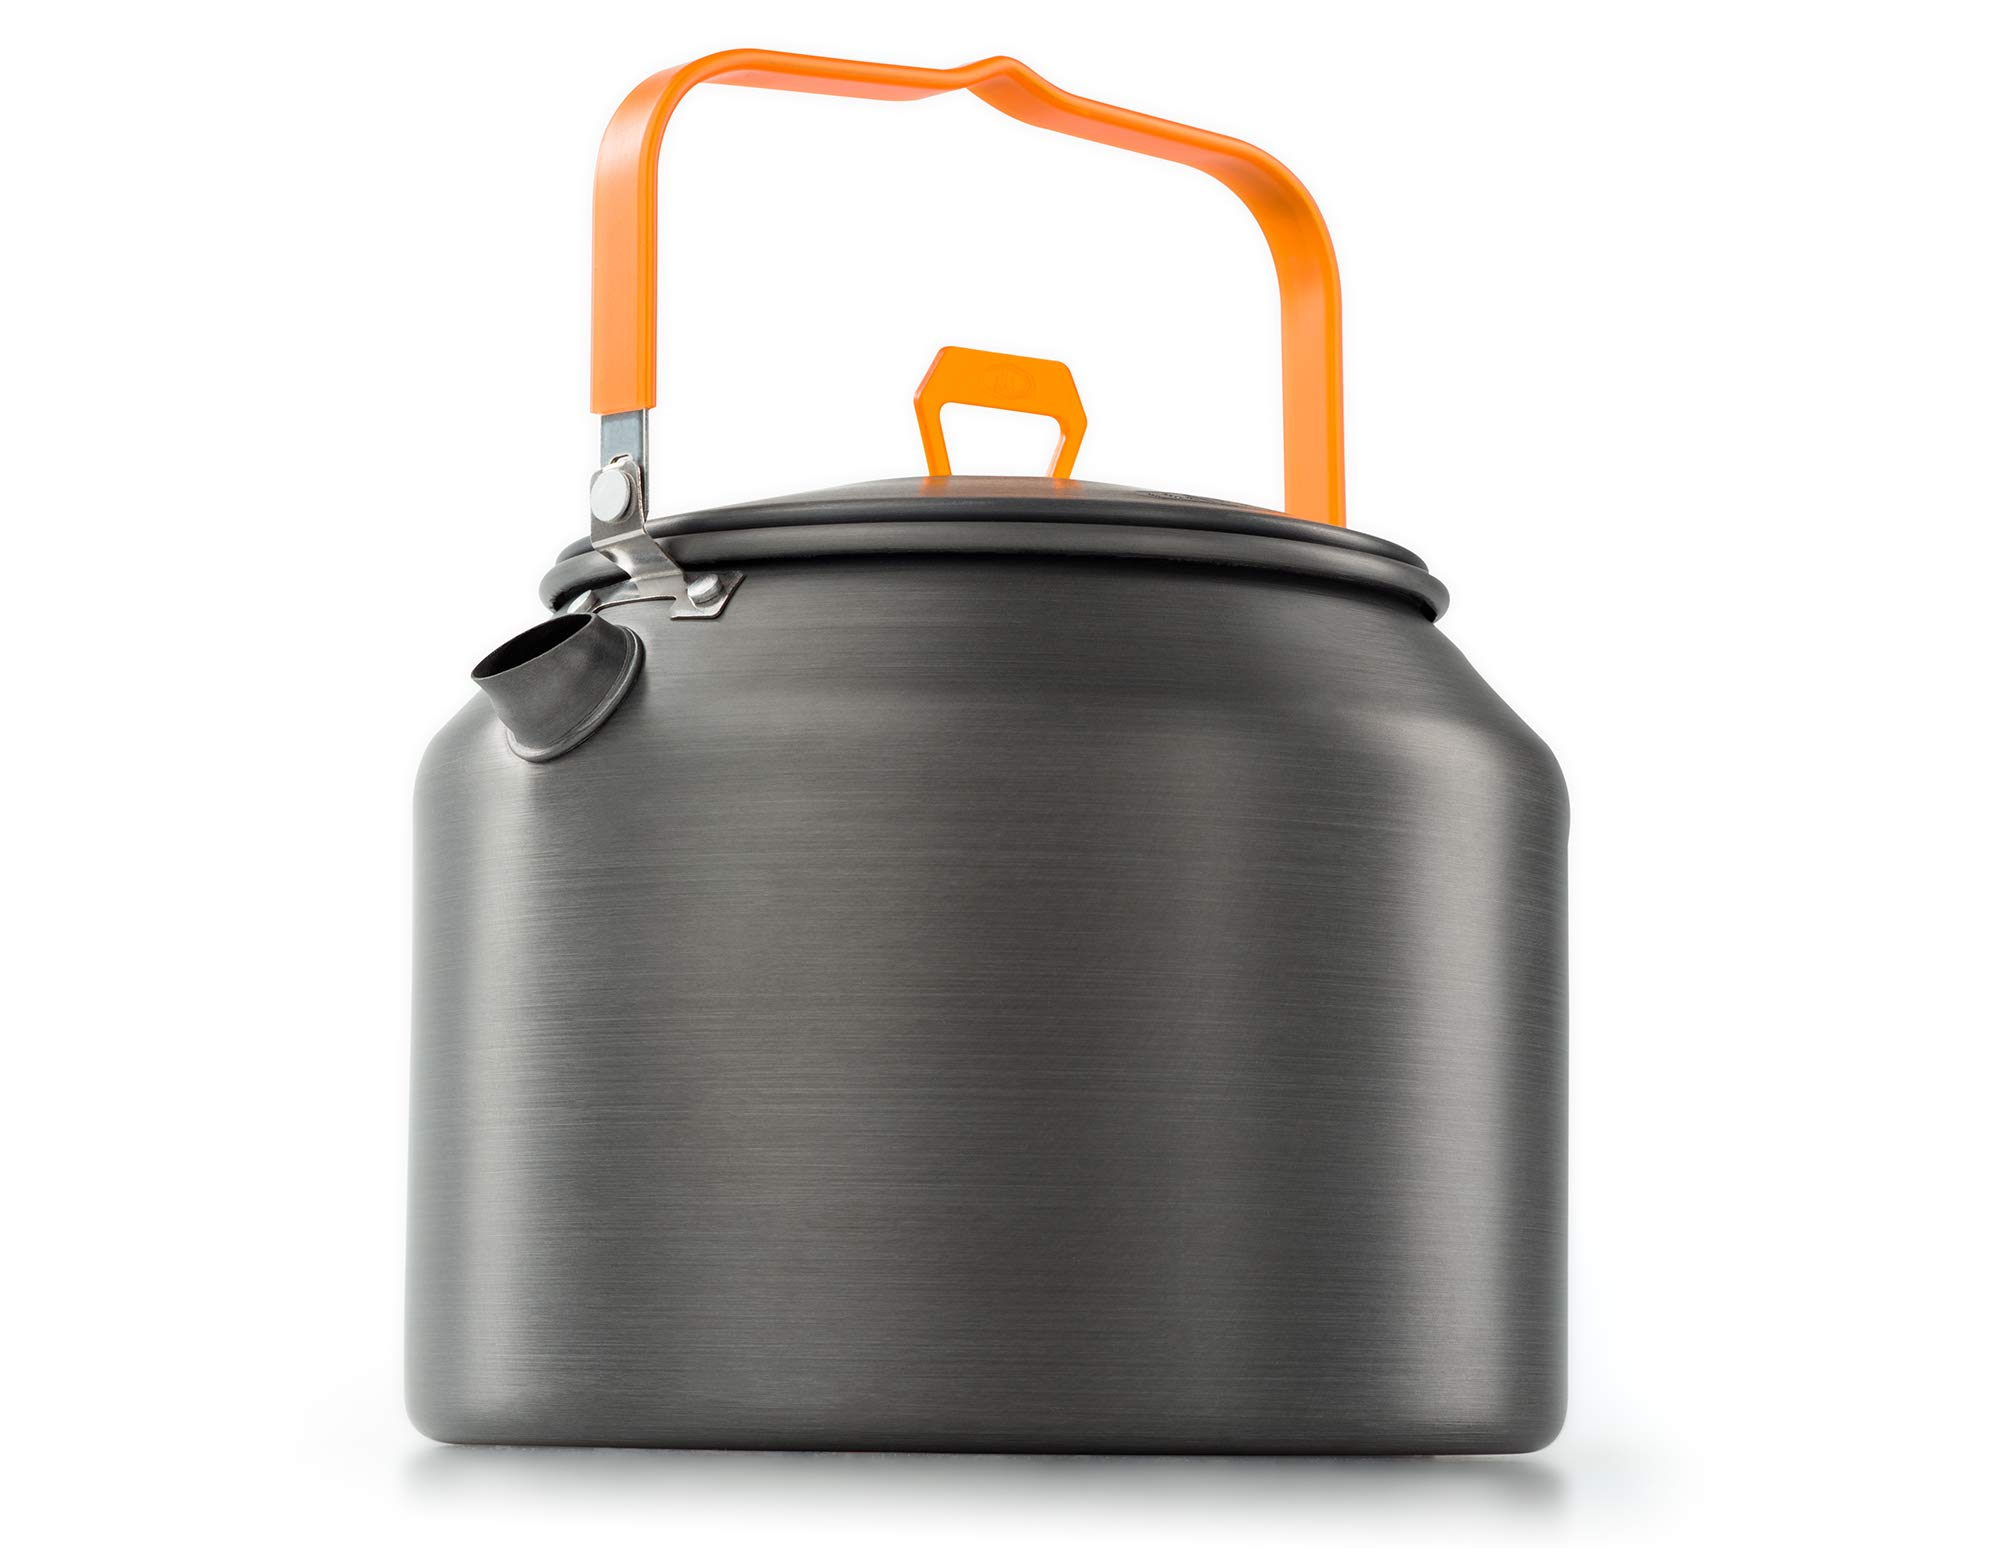 GSI Outdoors Halulite 1.8 qt. Tea Kettle Ultralight Aluminum with Superior Heating by GSI Outdoors